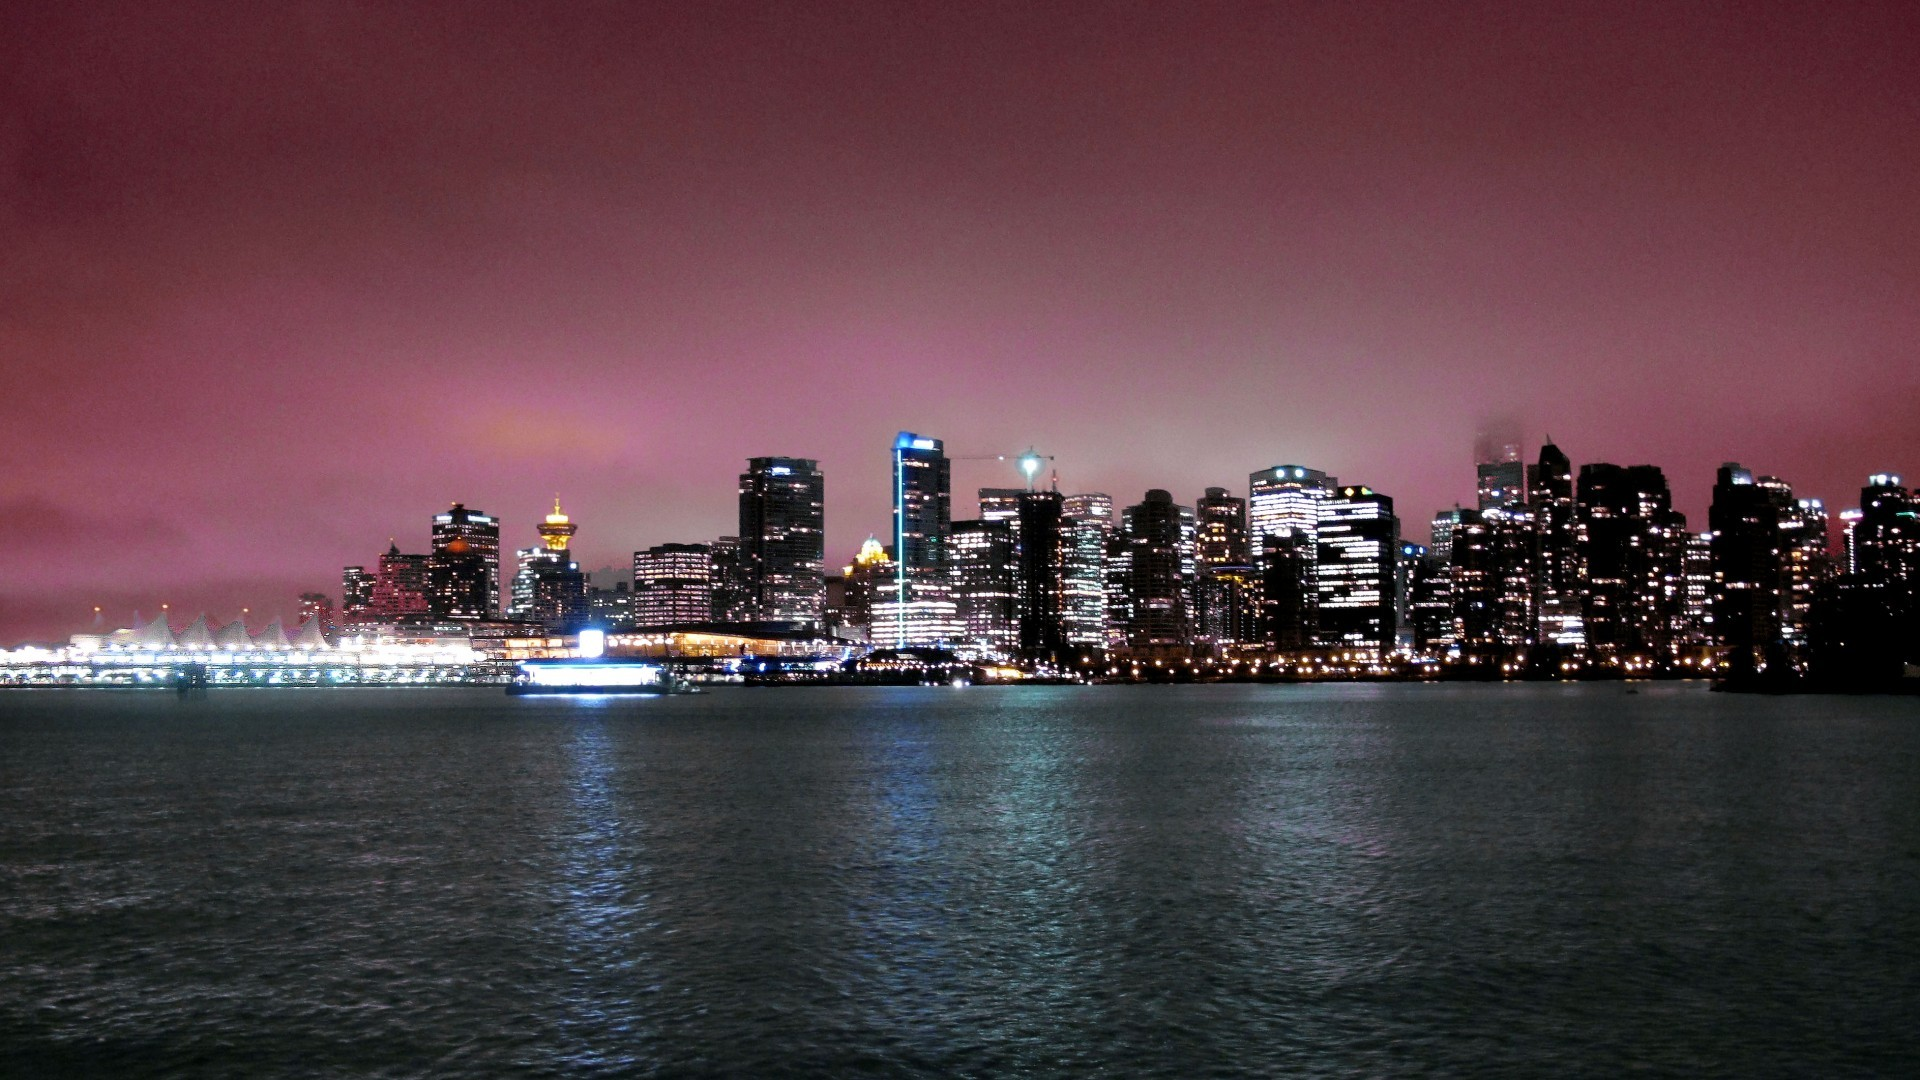 1920x1080 Download Vancouver skyline free, Vancouver skyline fare wallpaper